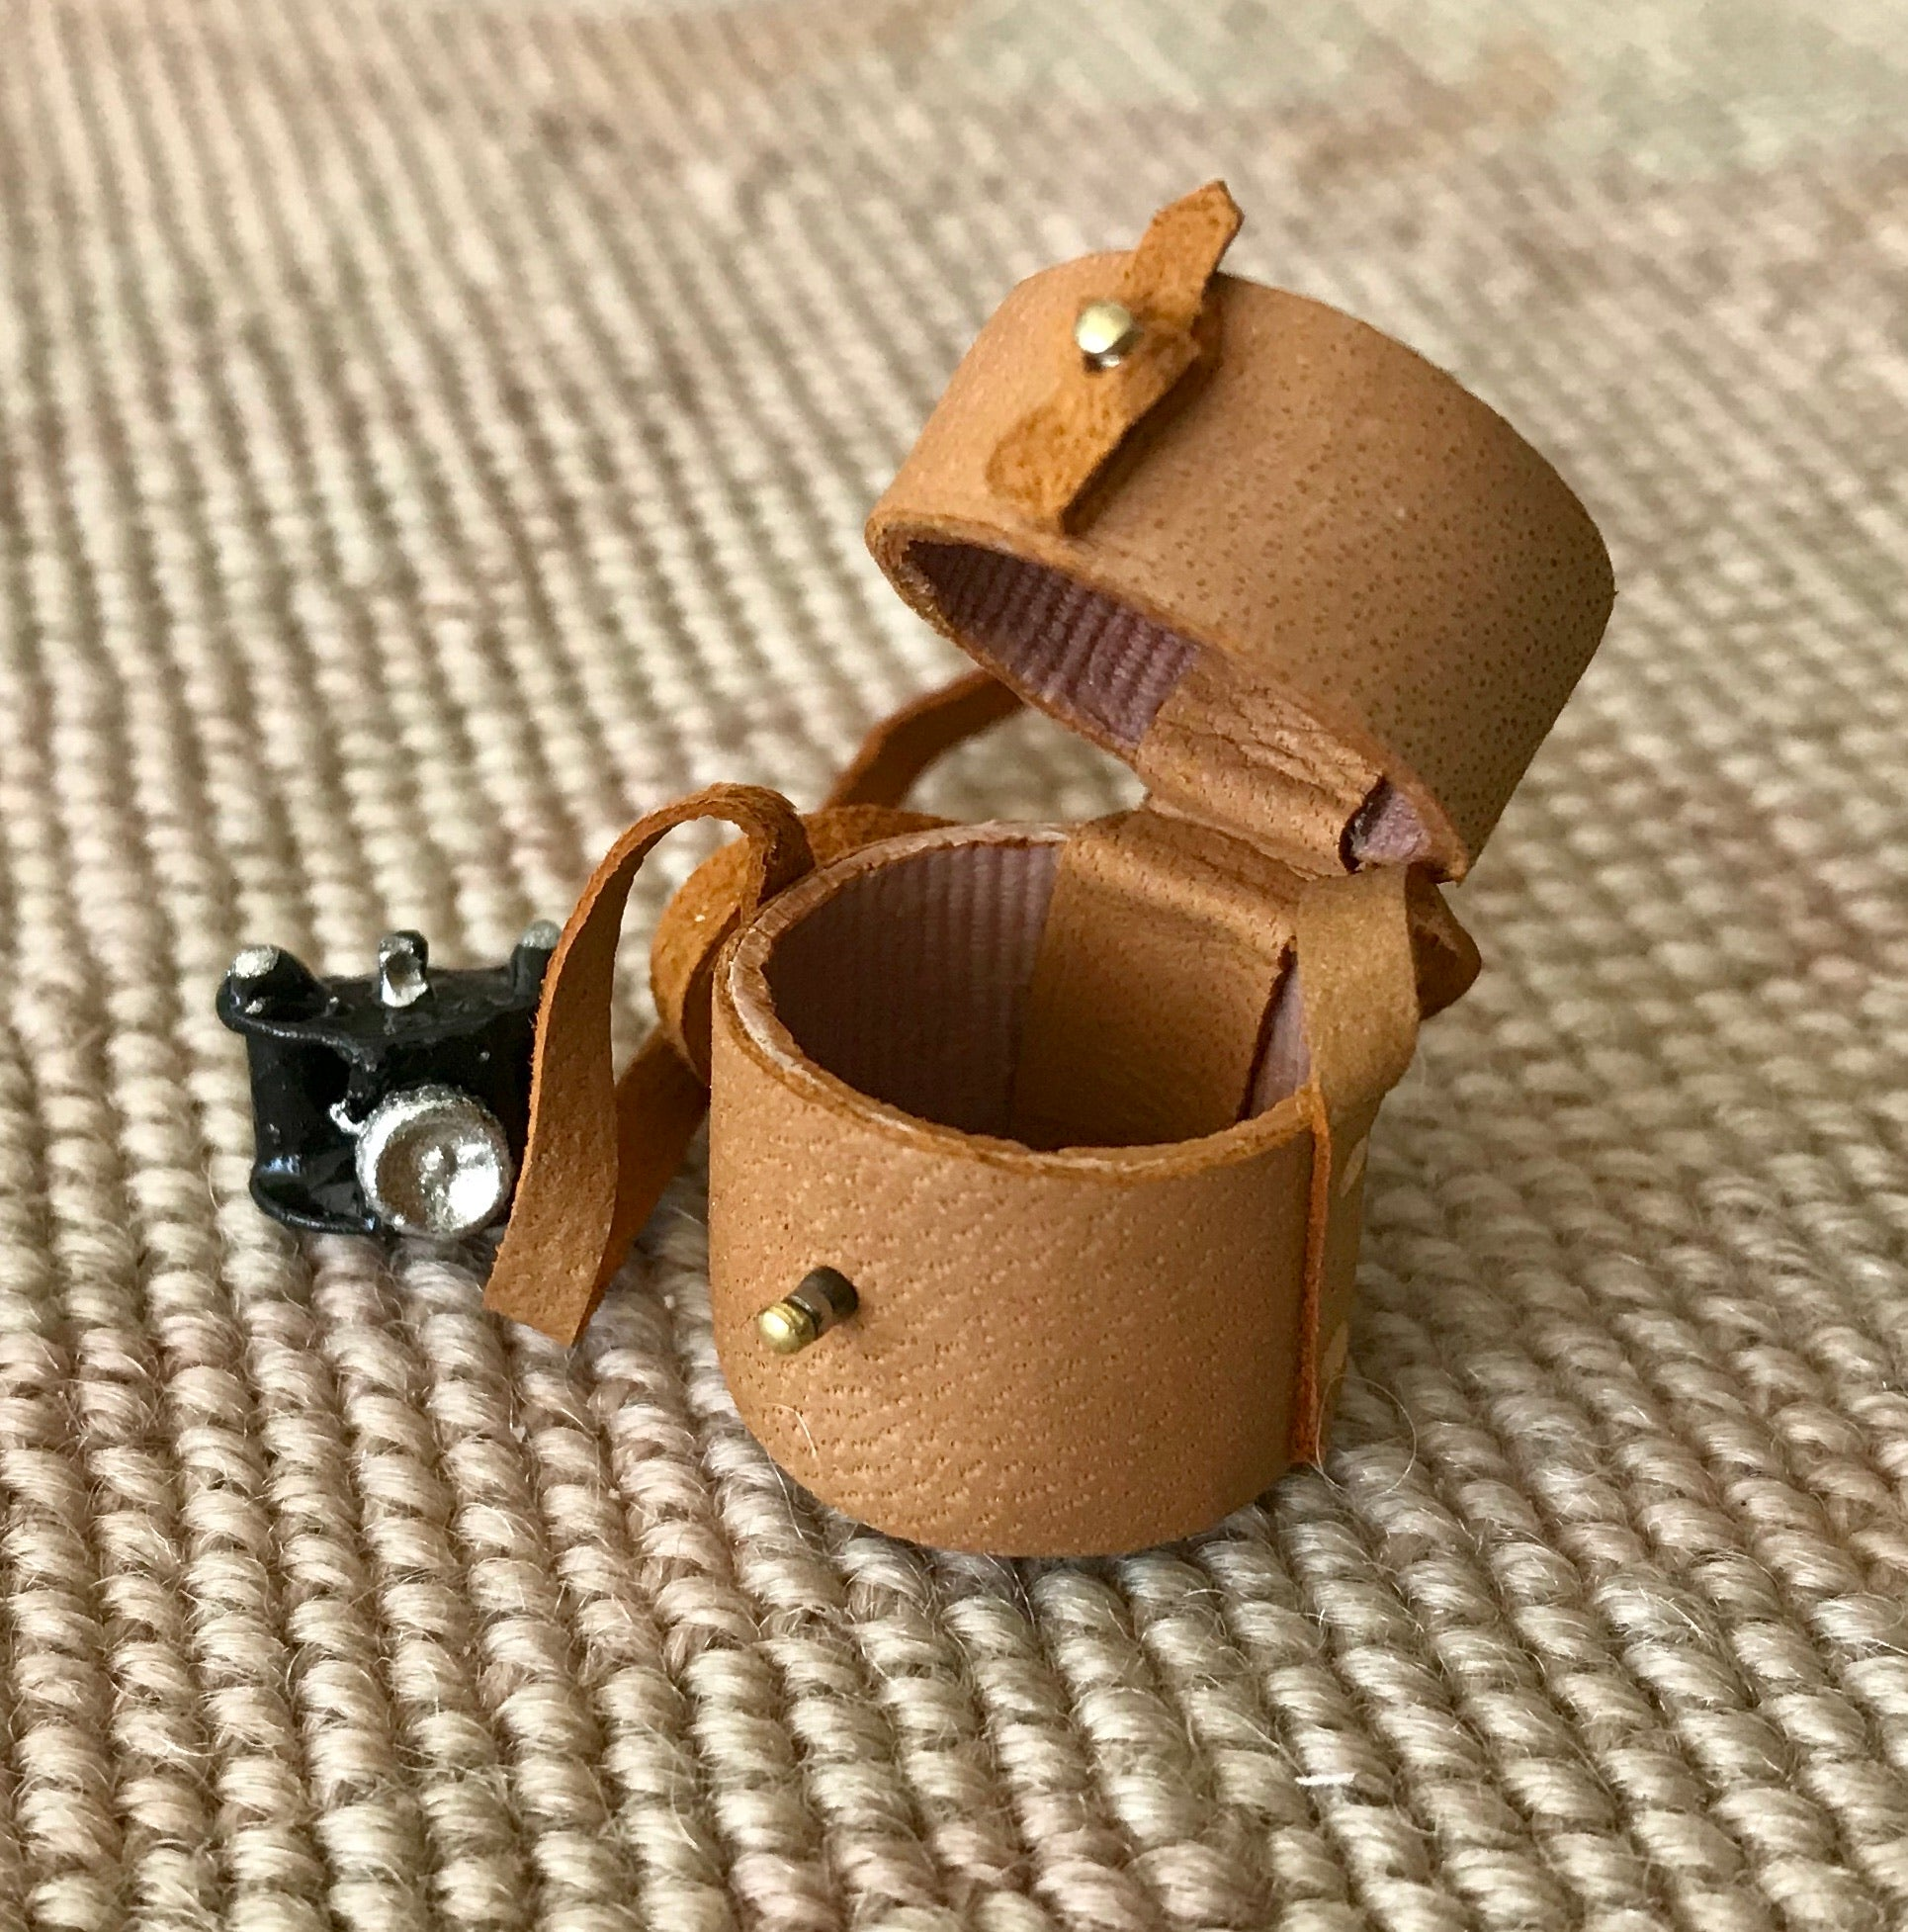 Camera with Leather Case 1:12 Dollhouse Miniature